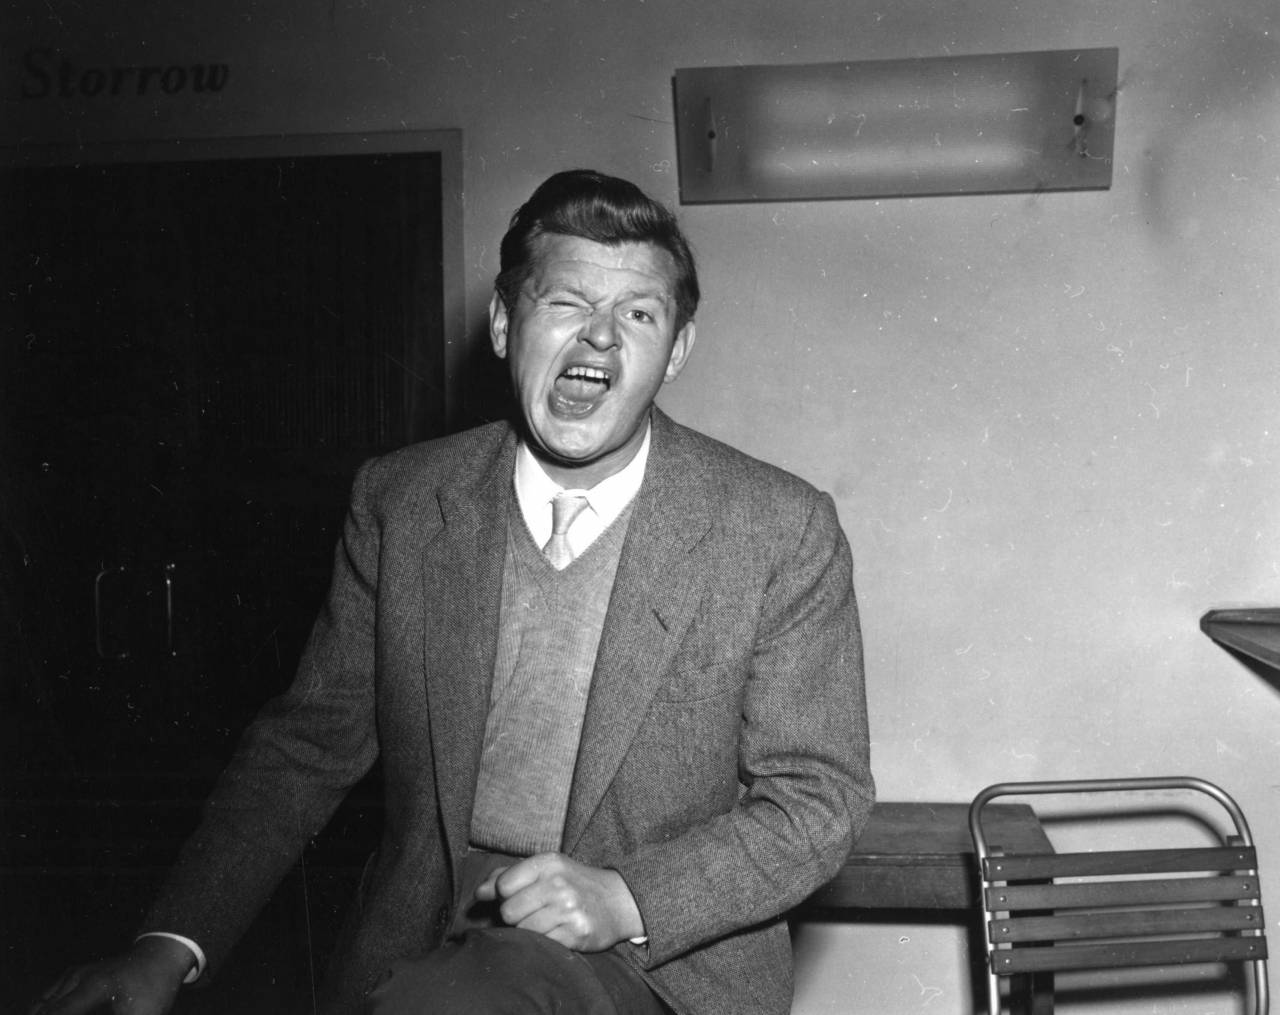 'The Benny Hill Show' -